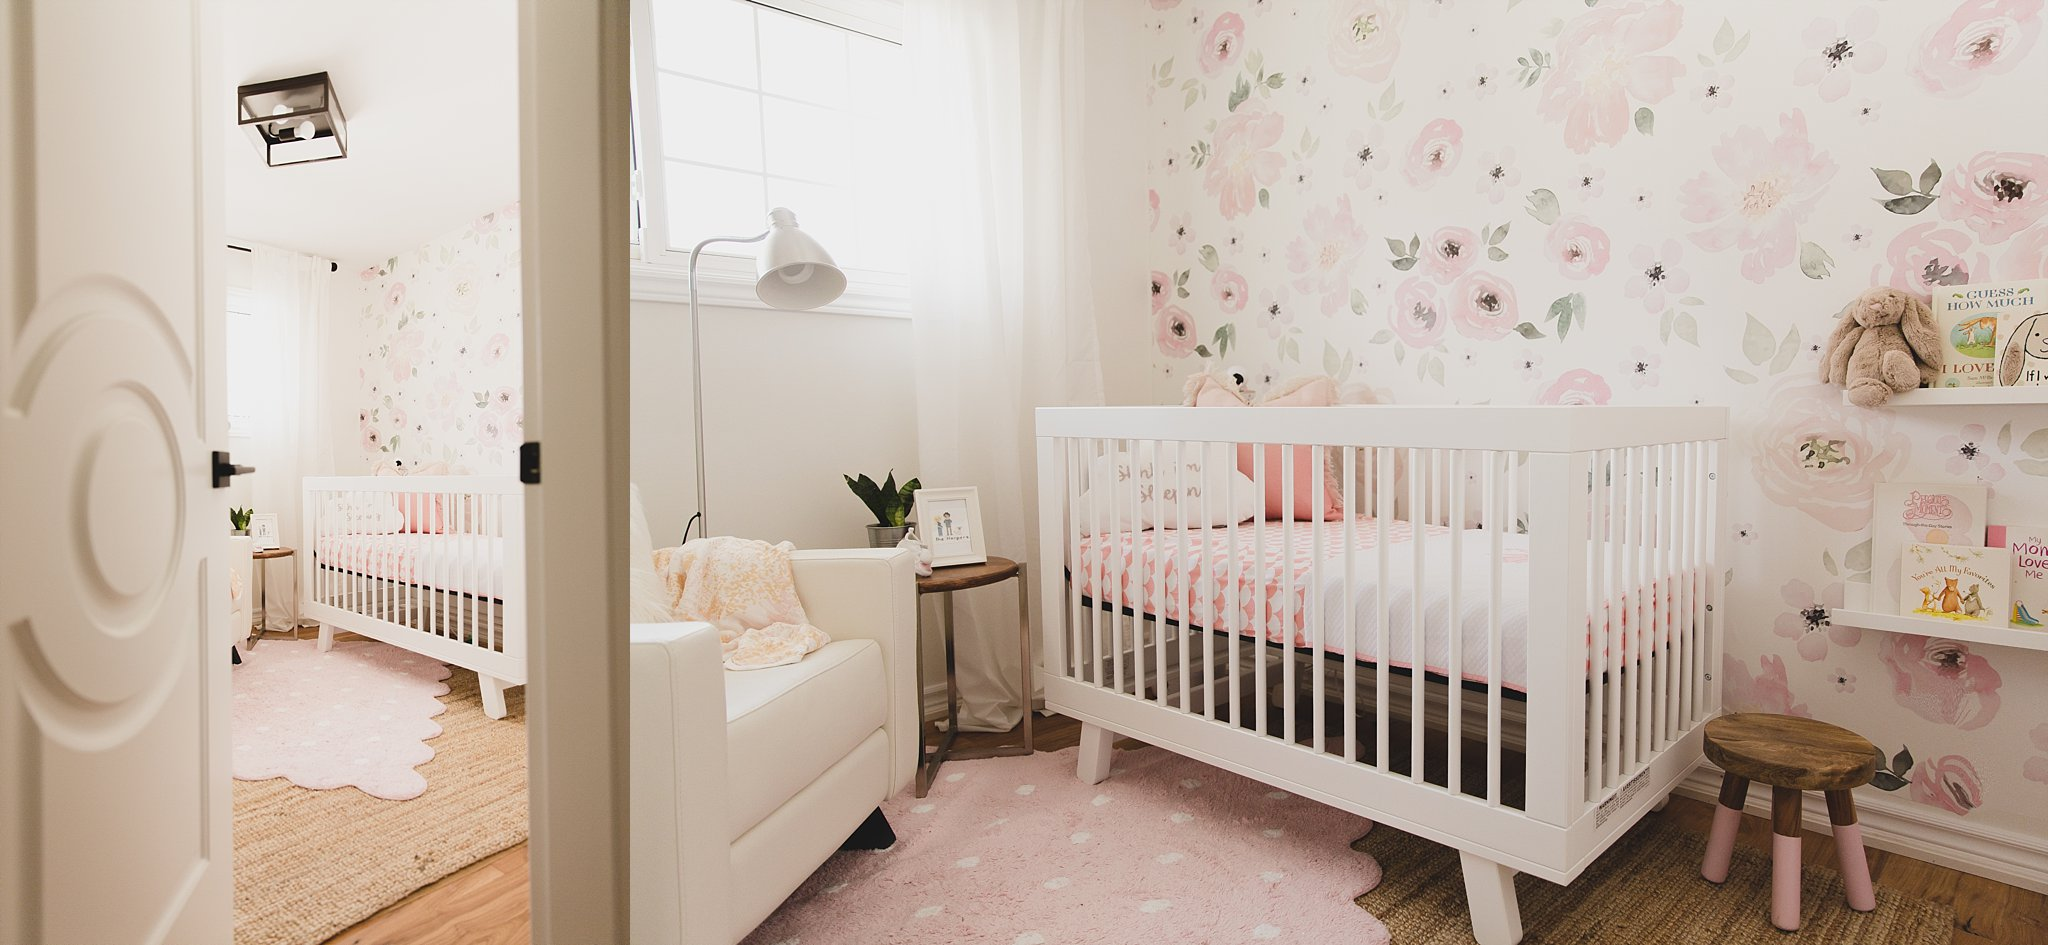 A picture of a girls floral nursery with crib and dresser from Snuggle Bugz and floral decal from Rocky Mountain decals. Designed by Jaclyn Harper Designs in Burlington, Ontario.Photographed by Rachael Little Photography near Woodstock, Ontario.